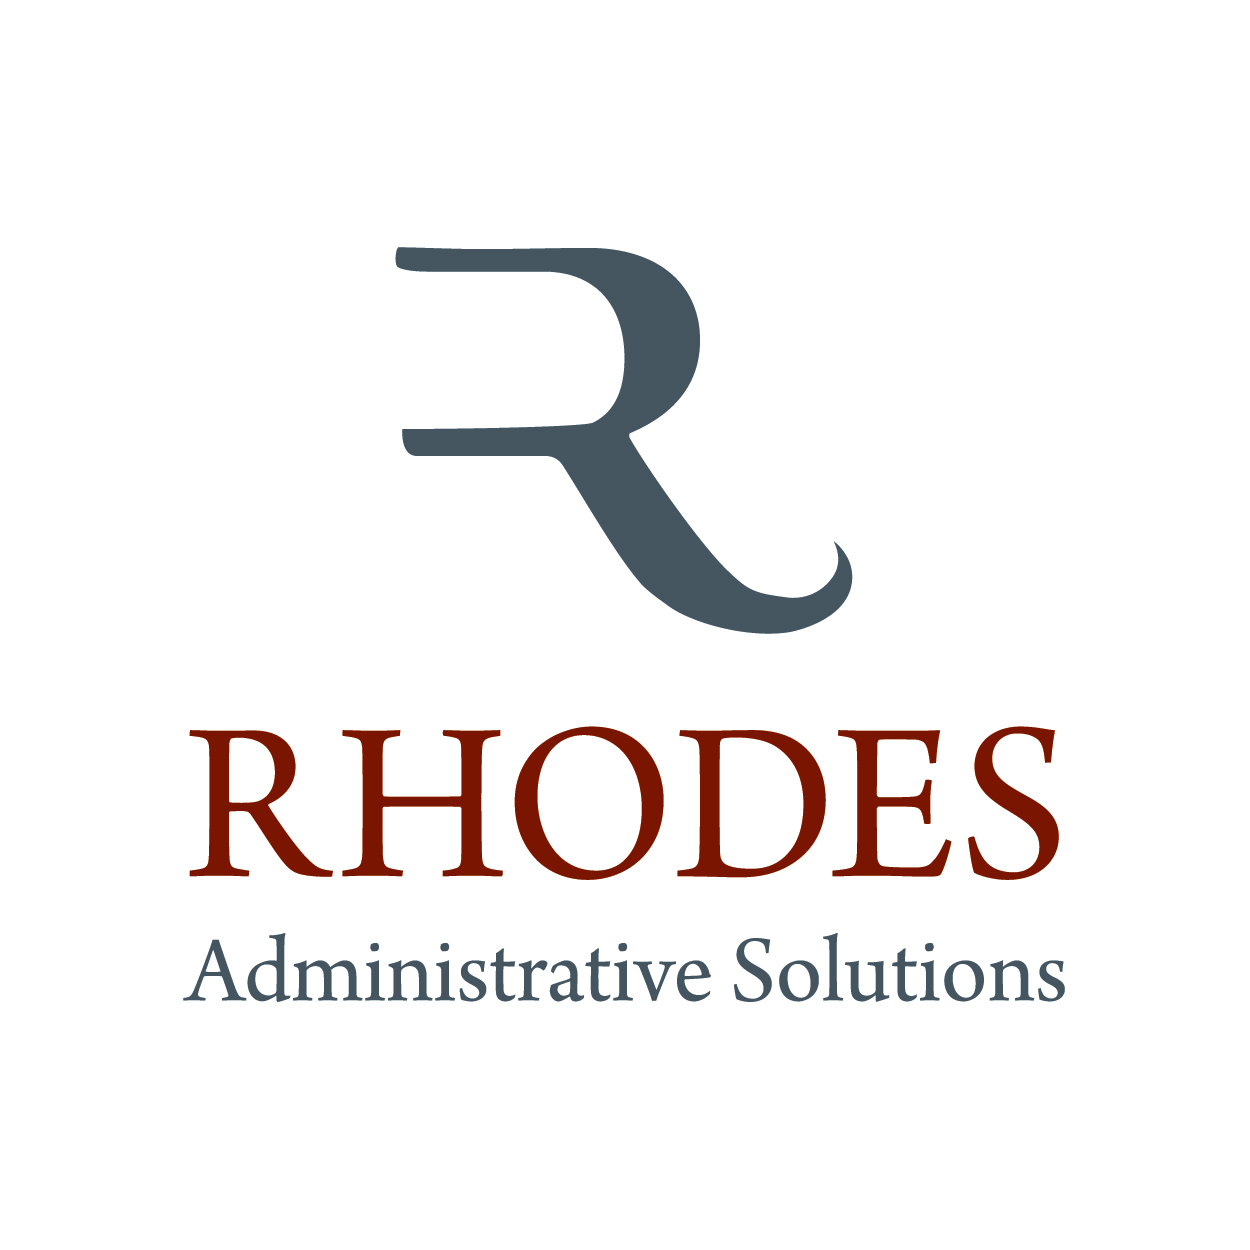 Logo Design by josephope - Entry No. 126 in the Logo Design Contest Rhodes Administrative Solutions.